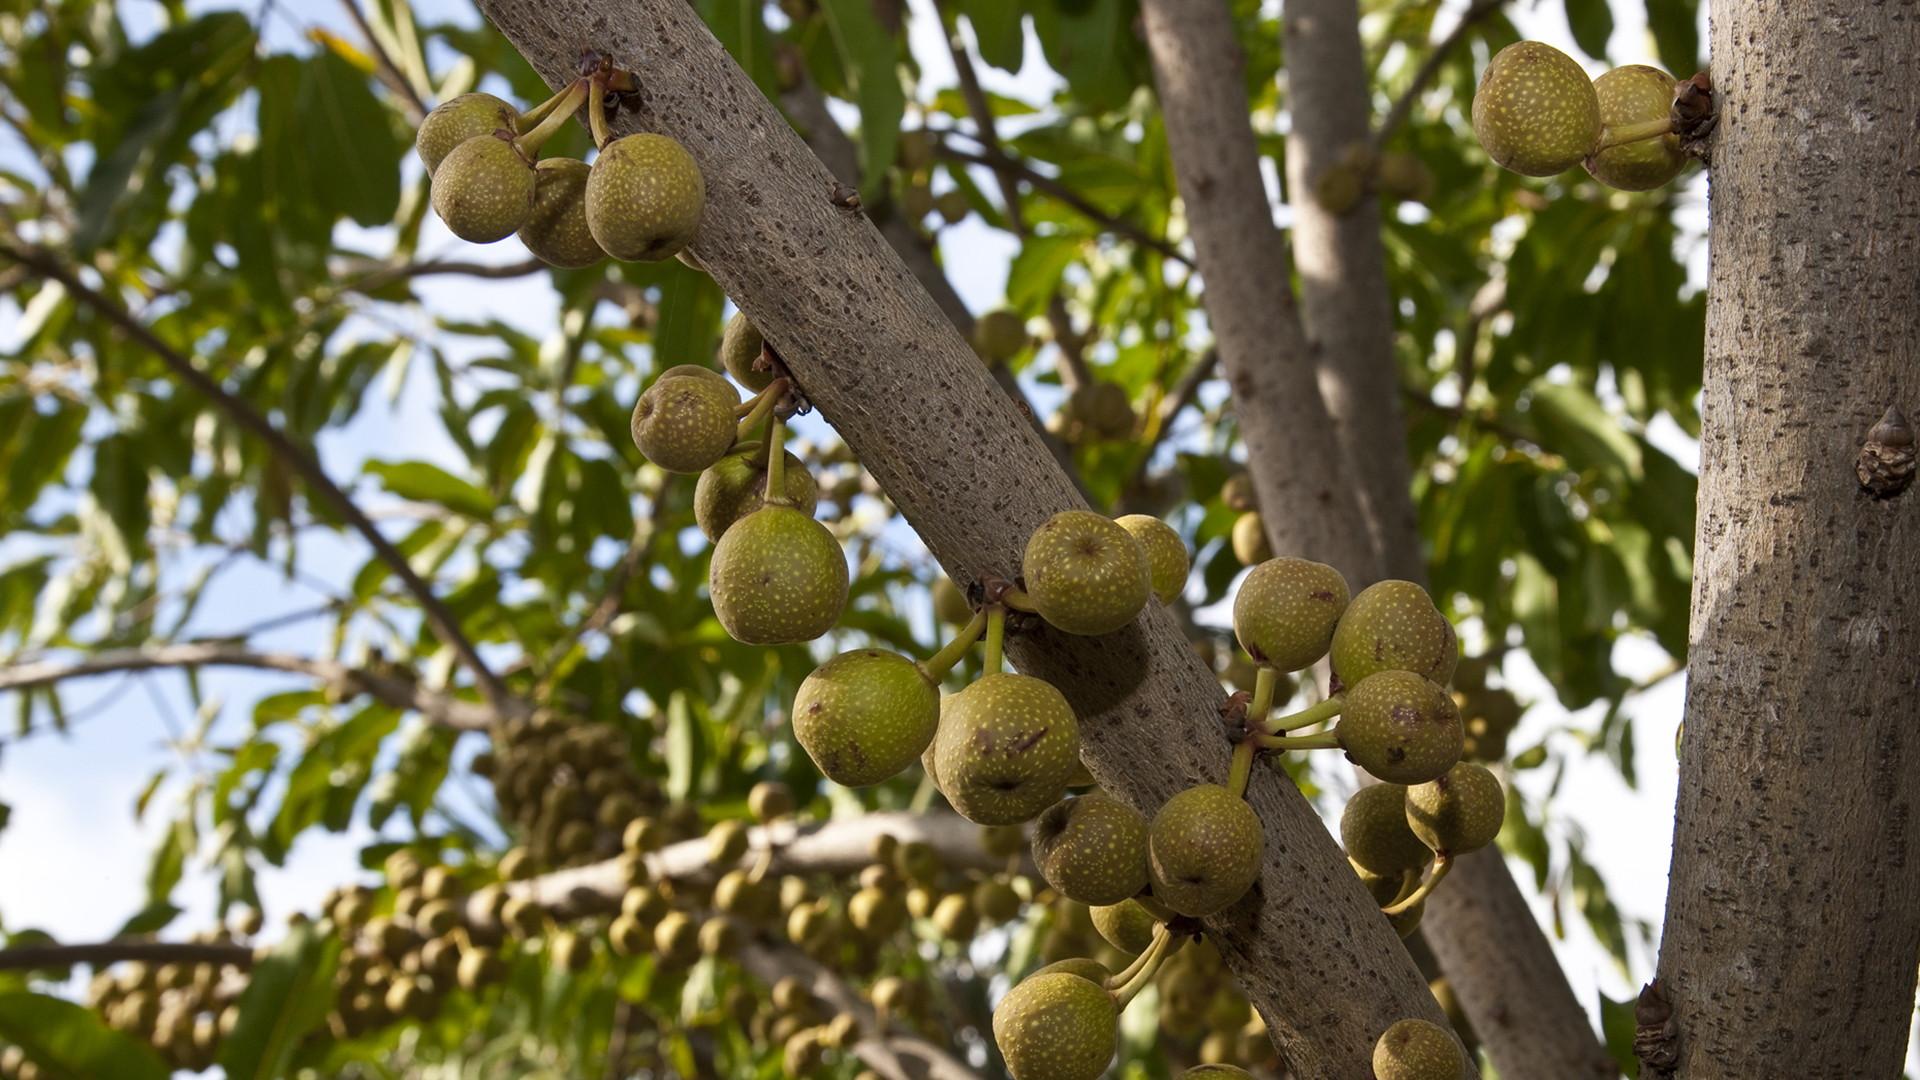 many figs are shown hanging on a ficus tree - Ficus Trees